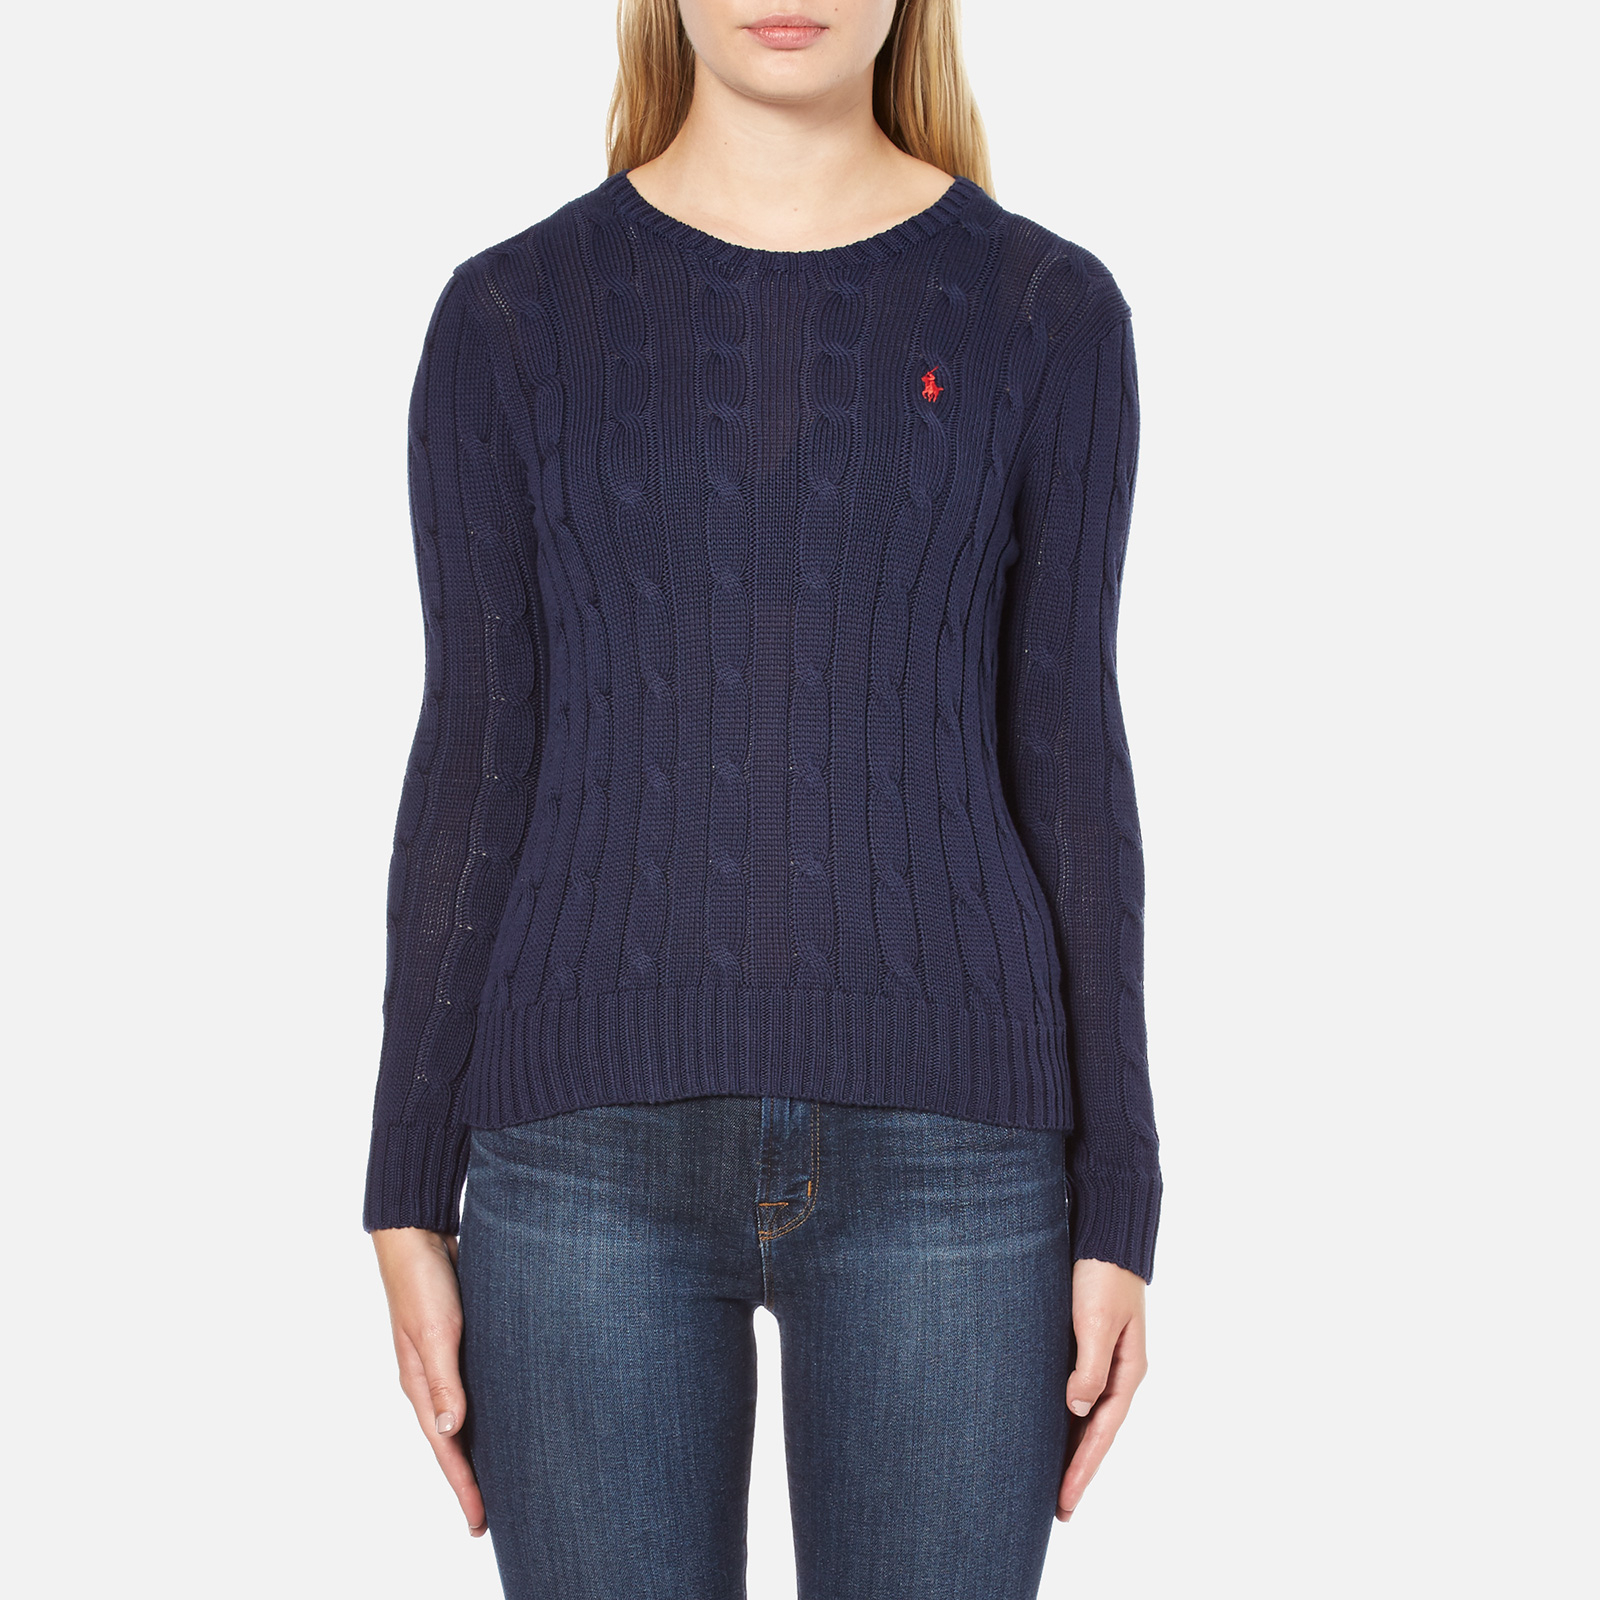 1bf5a4764a Polo Ralph Lauren Women s Julianna Crew Neck Jumper - Hunter Navy - Free UK  Delivery over £50